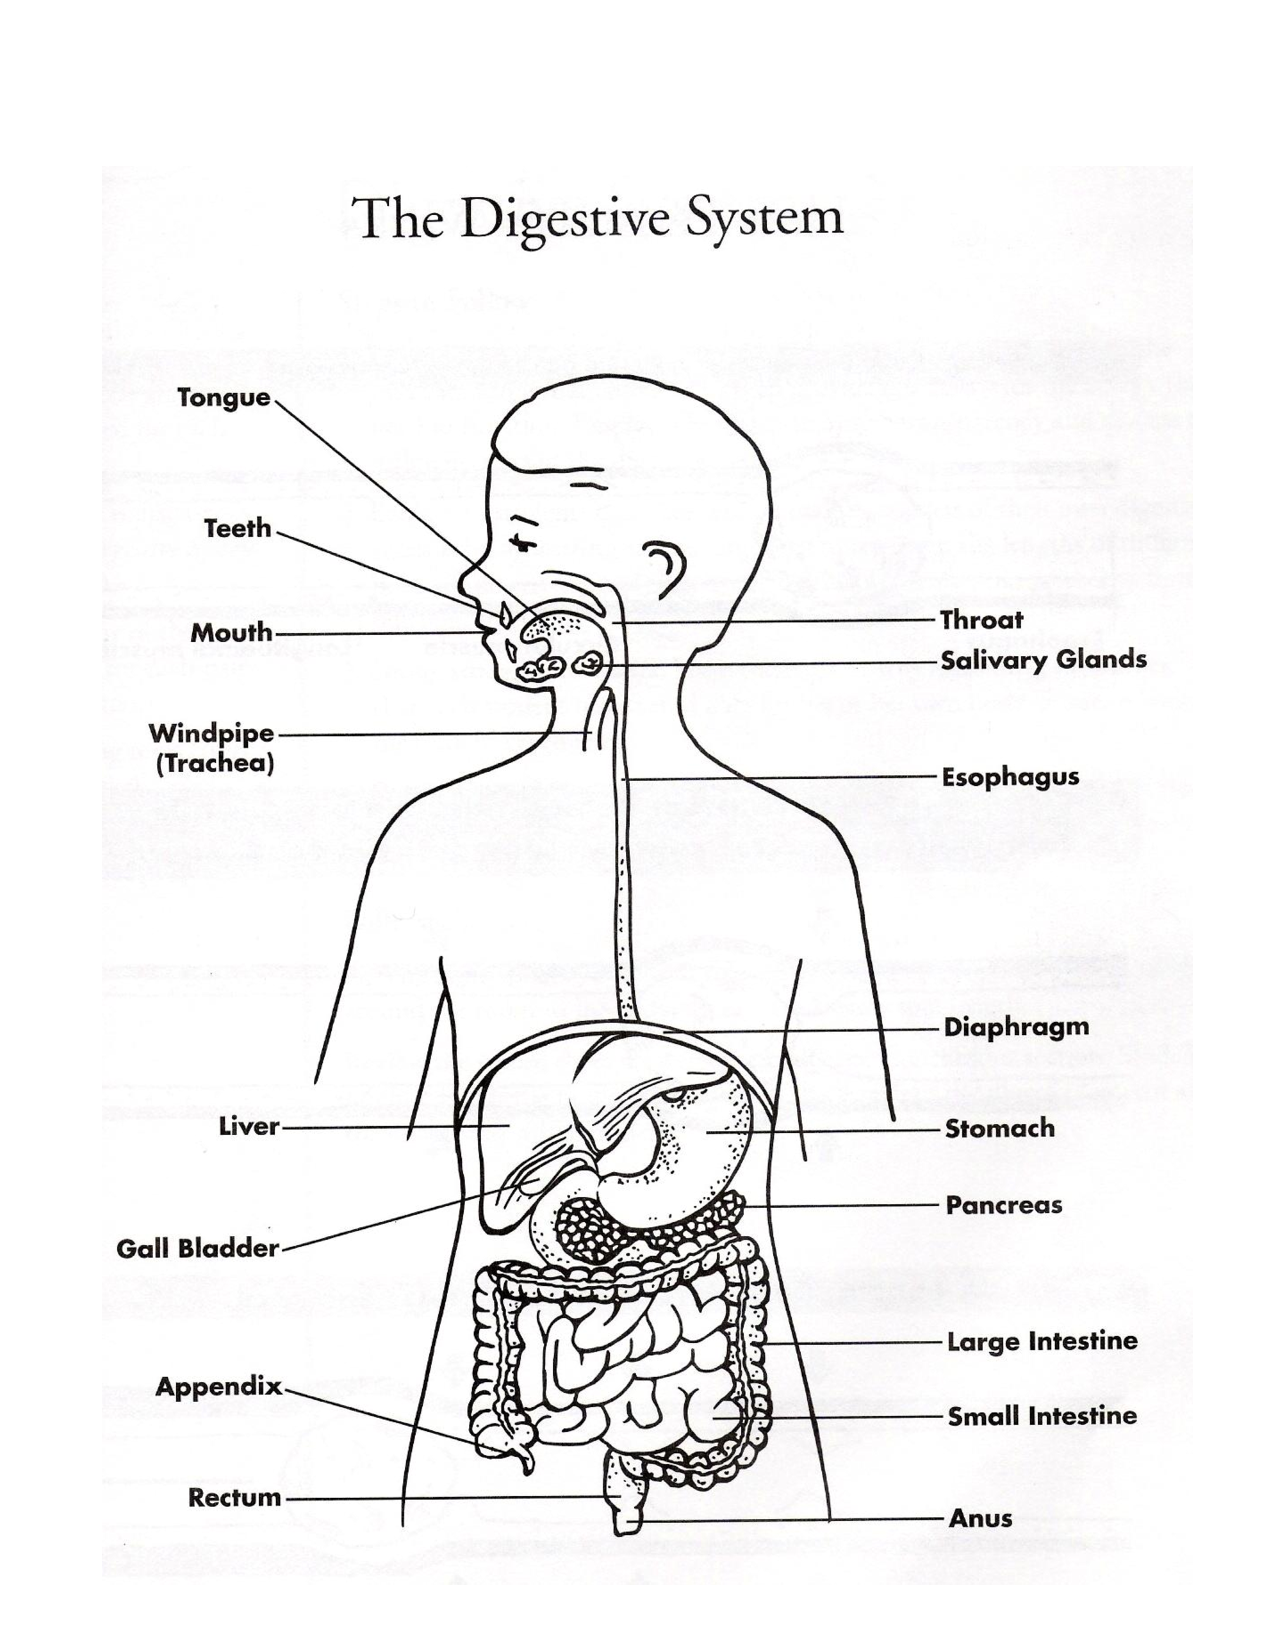 Simple Digestive System Diagram Living systems resources